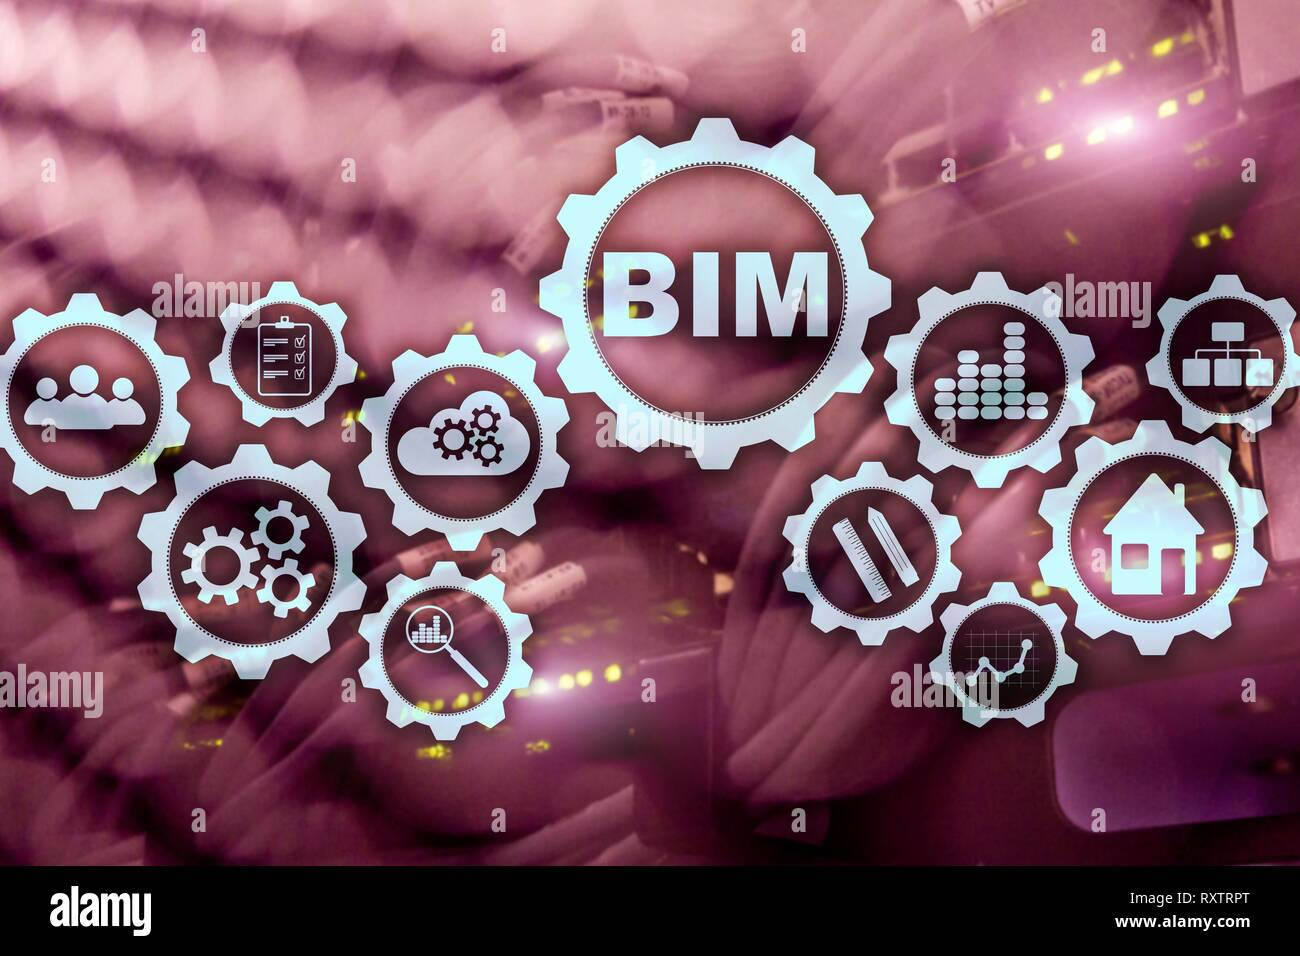 Building Information Modeling. BIM on the virtual screen with a server data center background - Stock Image